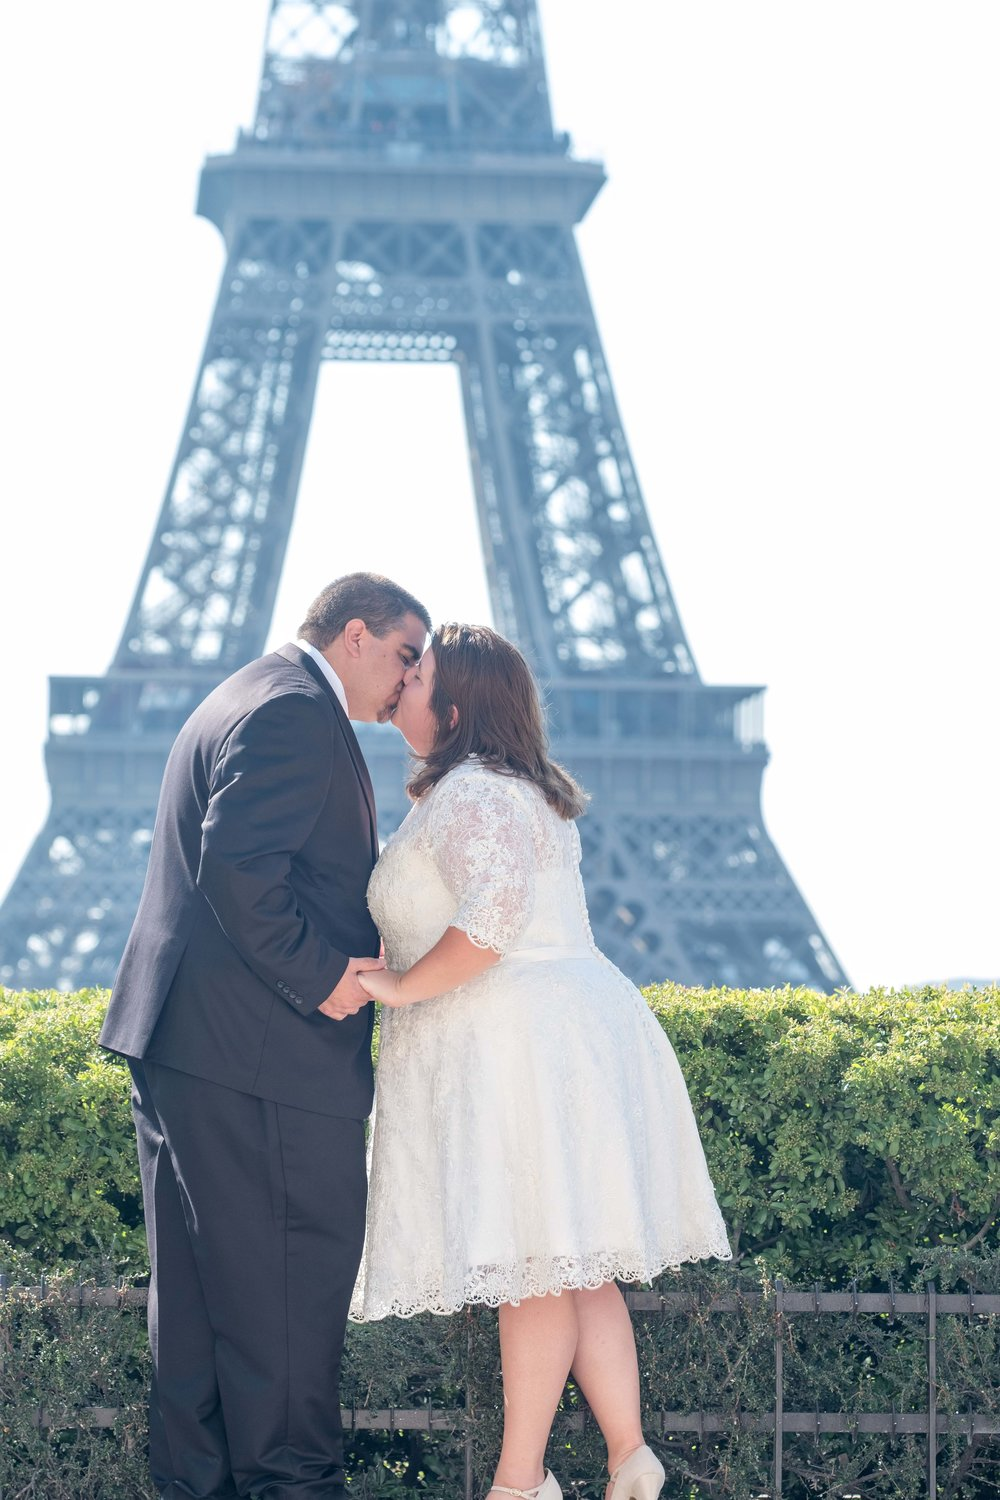 Newlyweds holding hands in front of the Eiffel Tower in Paris